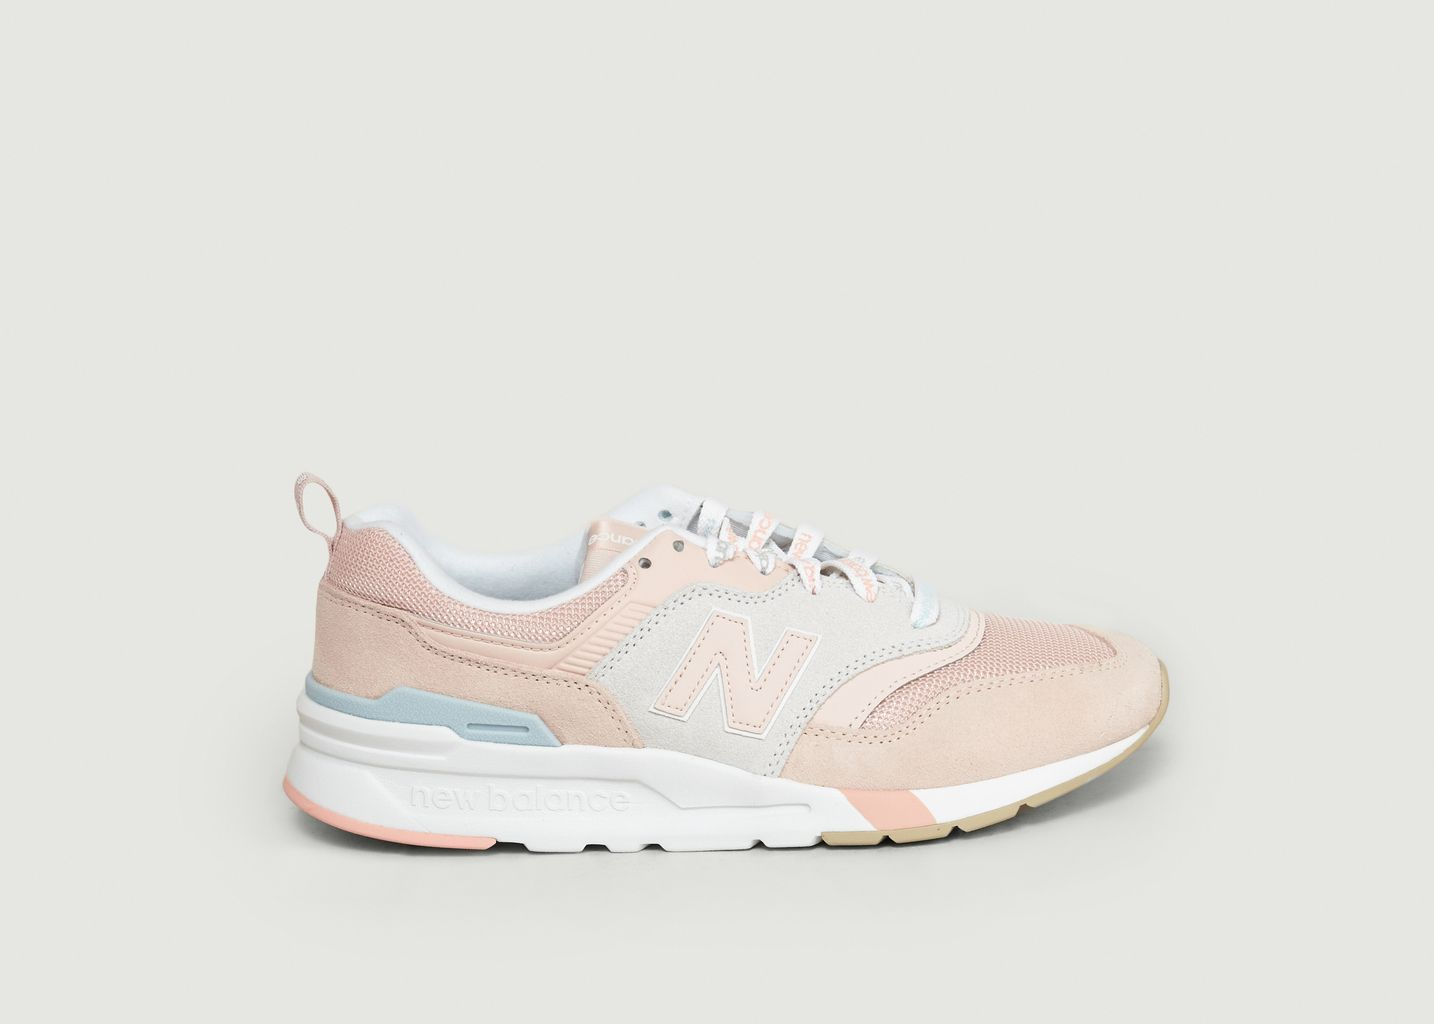 sneakers CW997 - New Balance